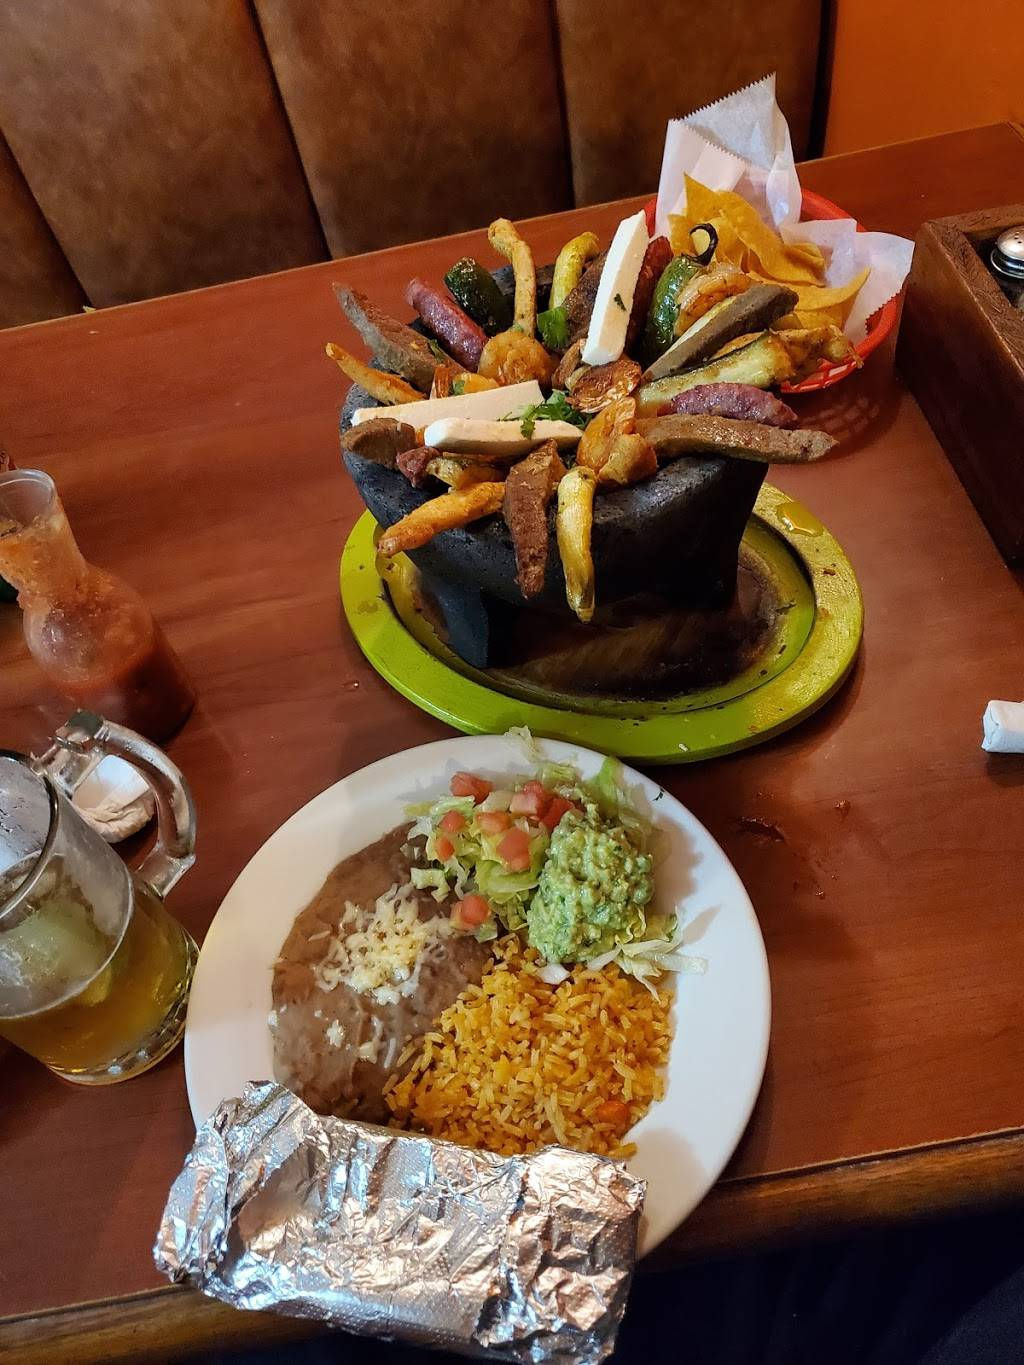 Los Panchos Mexican Food Restaurant - restaurant  | Photo 5 of 9 | Address: 445 Terry Pkwy, Terrytown, LA 70056, USA | Phone: (504) 368-0828